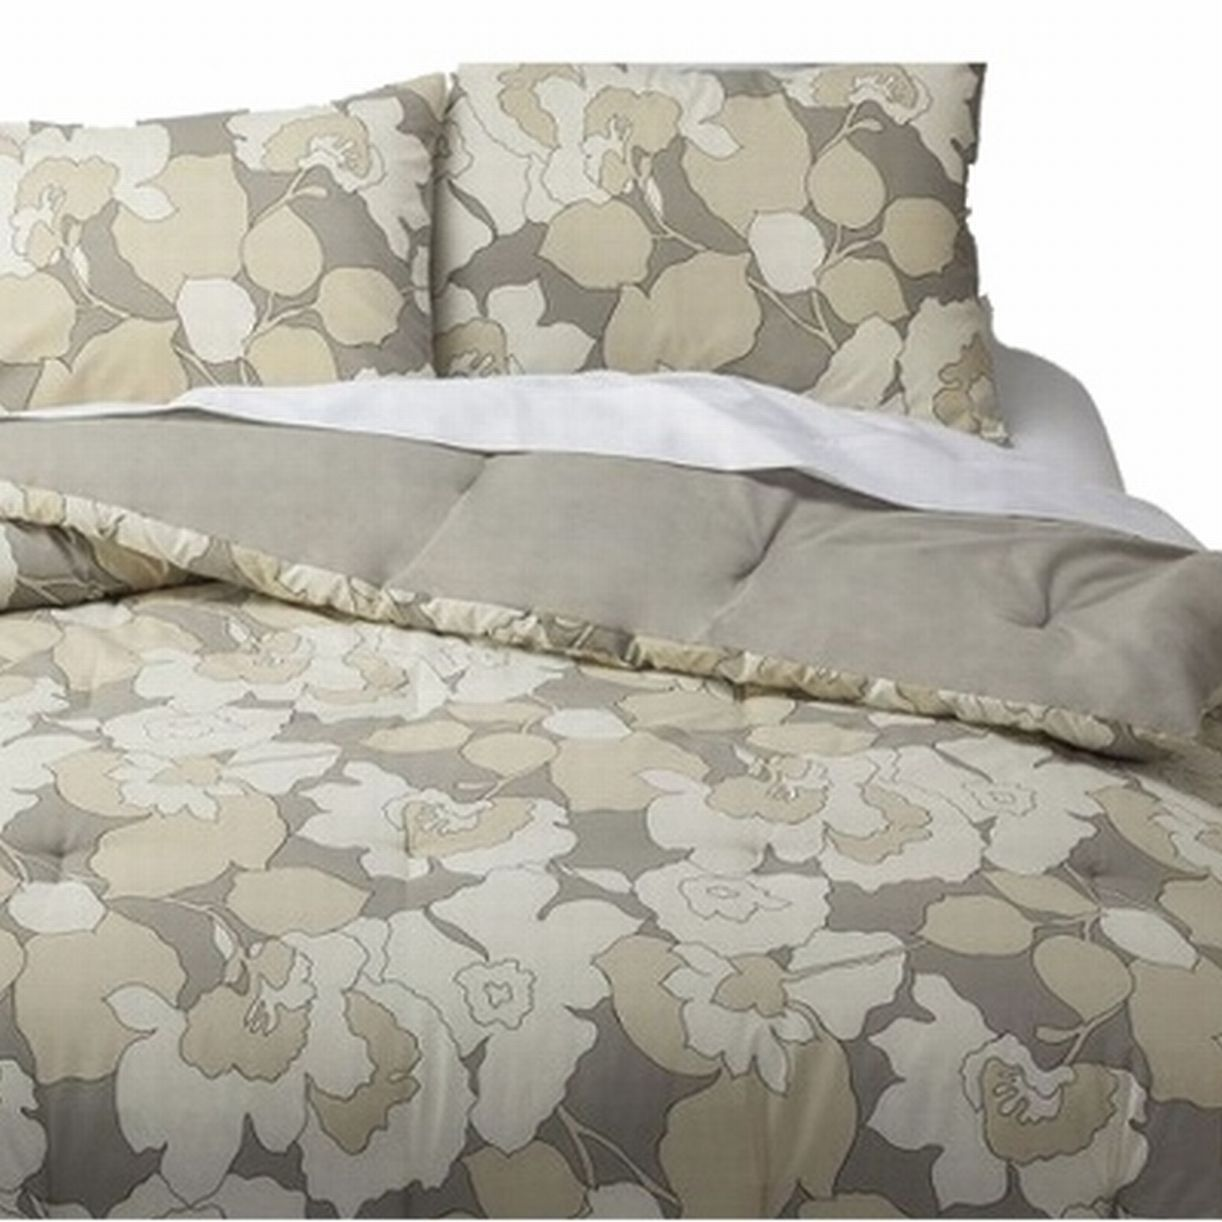 Room Essentials Twin XL Gray & Tan Floral Reversible Comforter Set with Sham